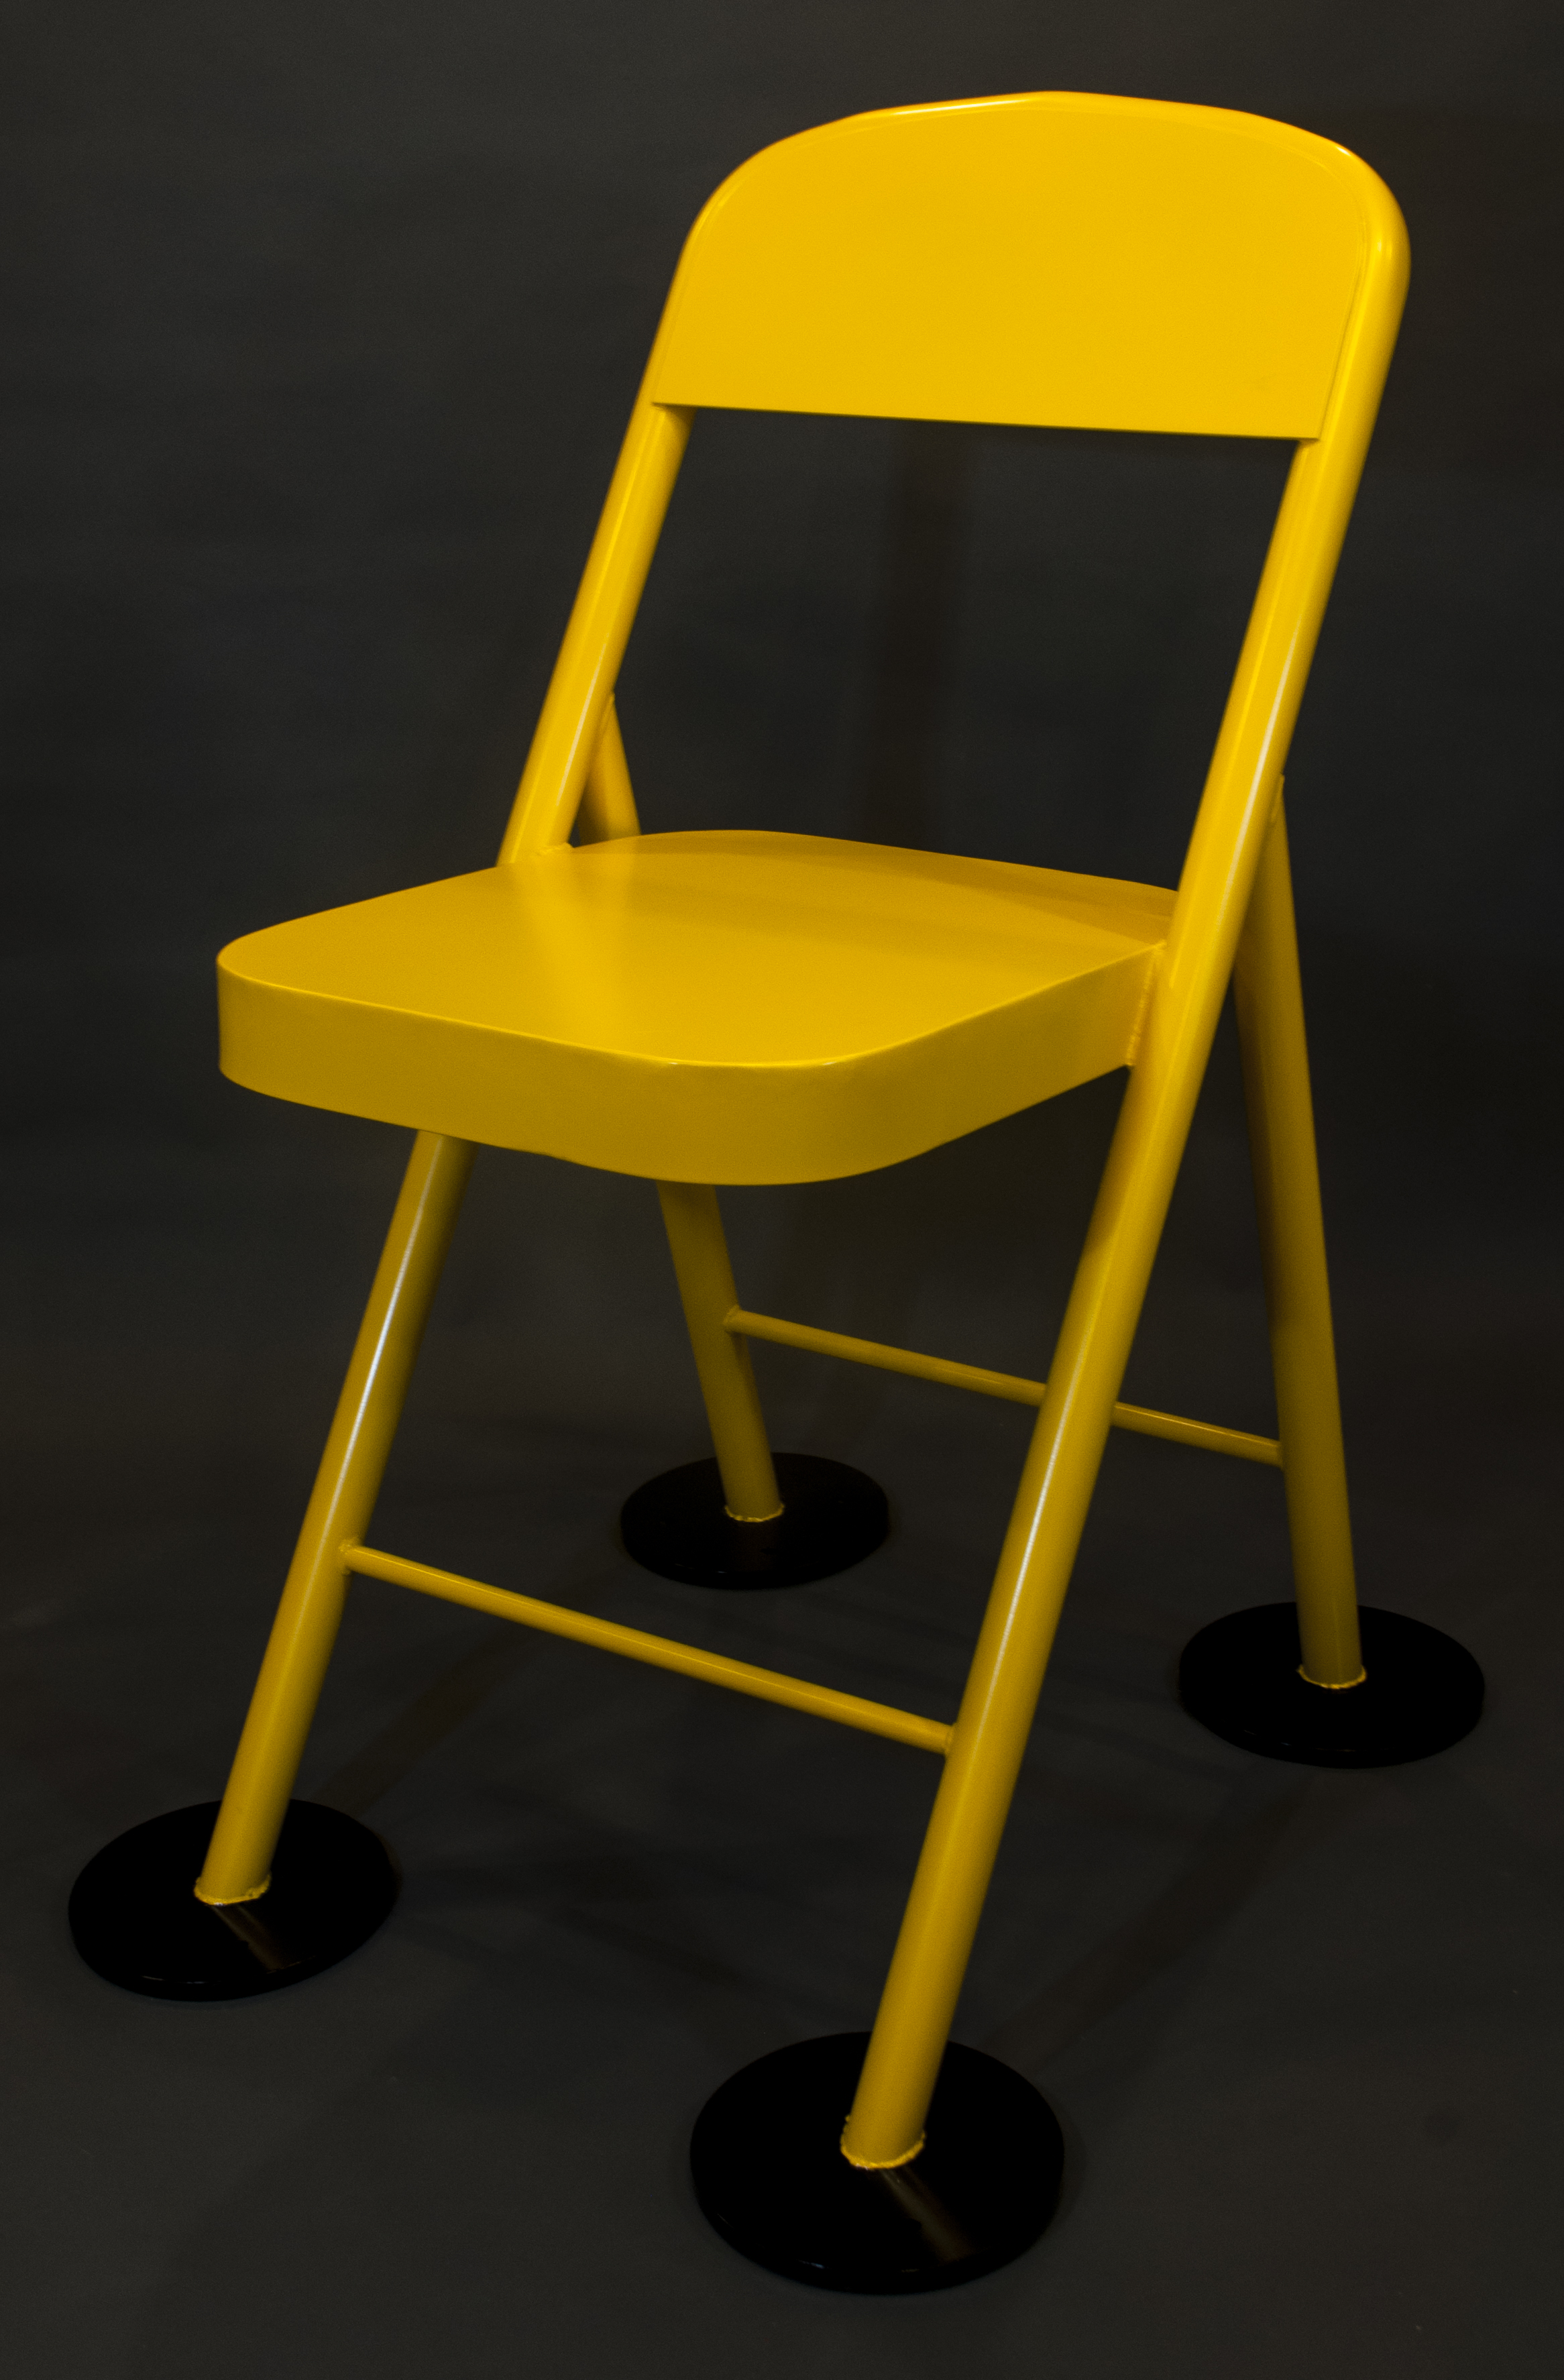 16_Camut_Parking_Chair.jpg